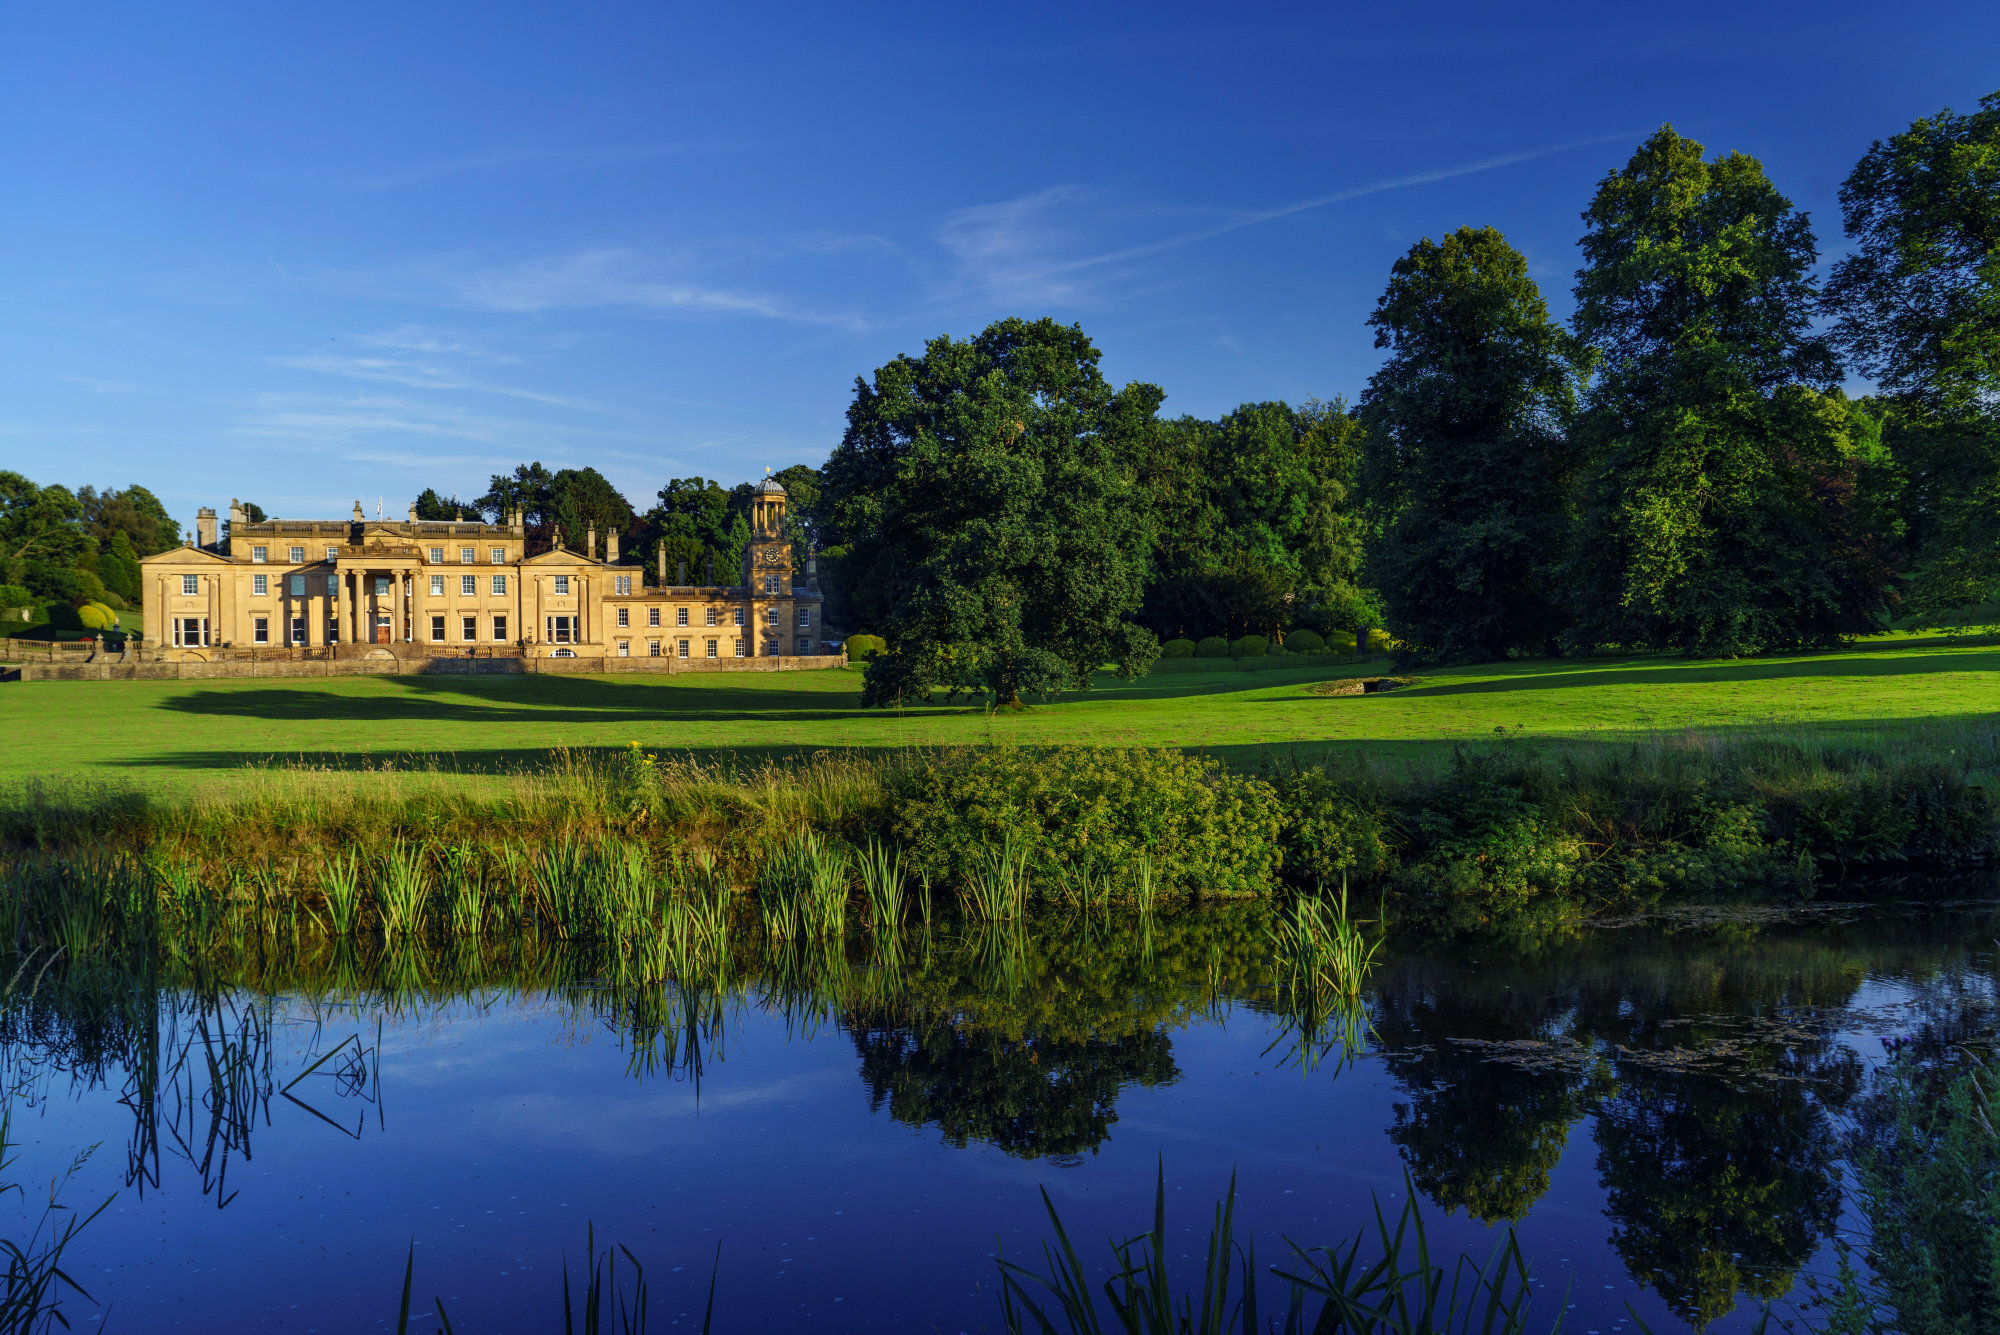 broughton-hall-front-blue-sky-reflection-water.jpg